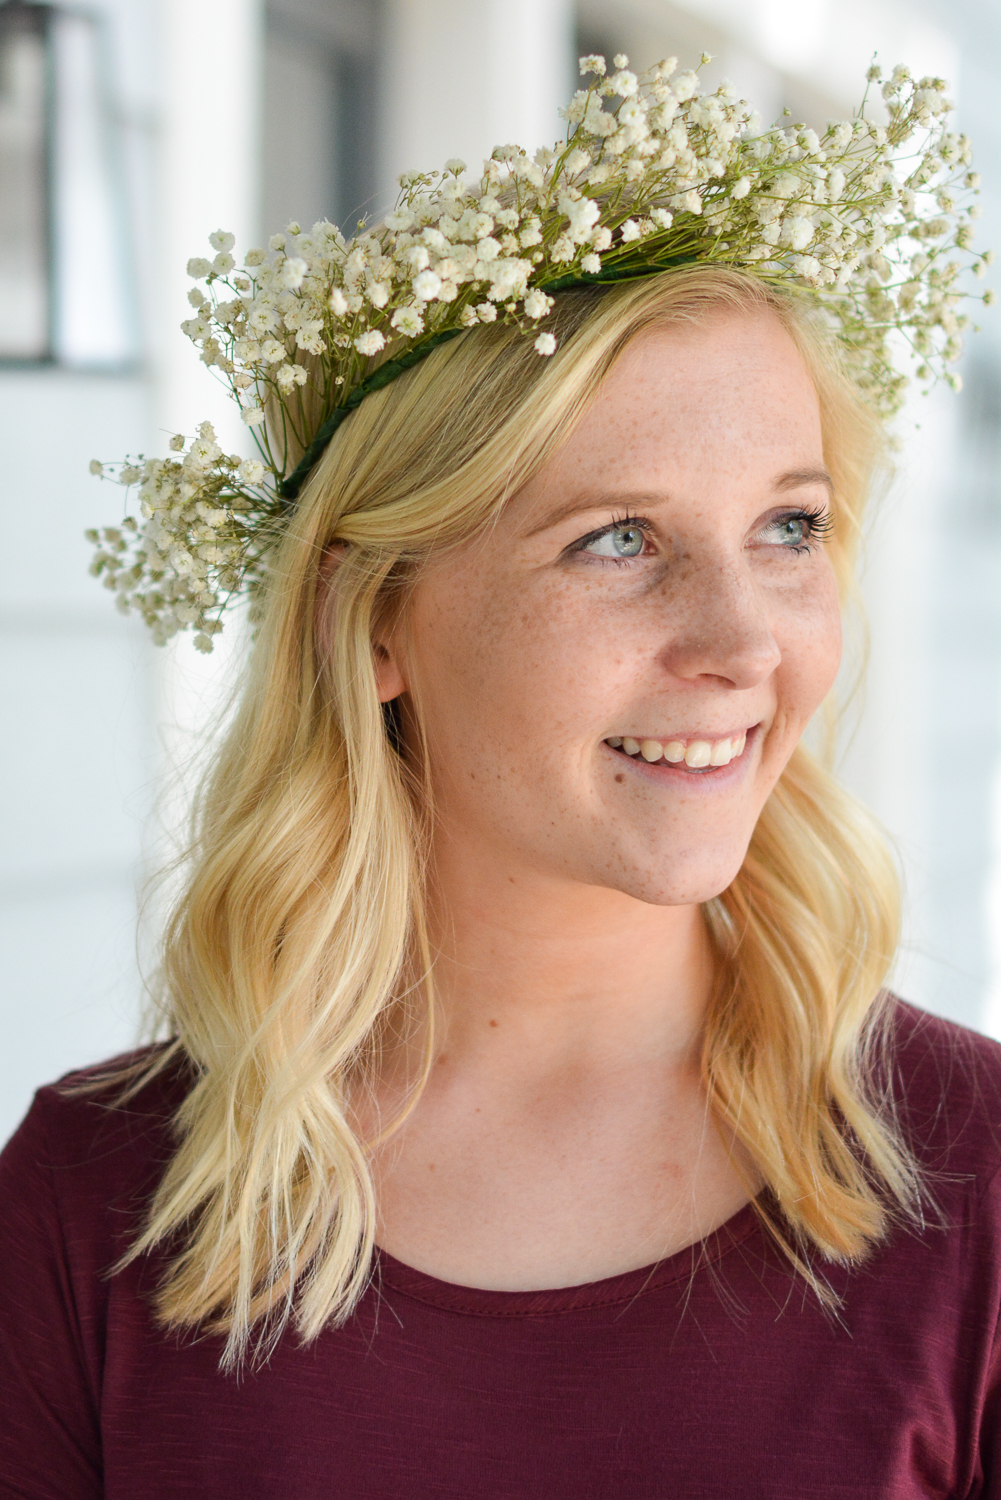 Babys Breath Flower Crown A Simple Diy Tutorial Paisley Sparrow